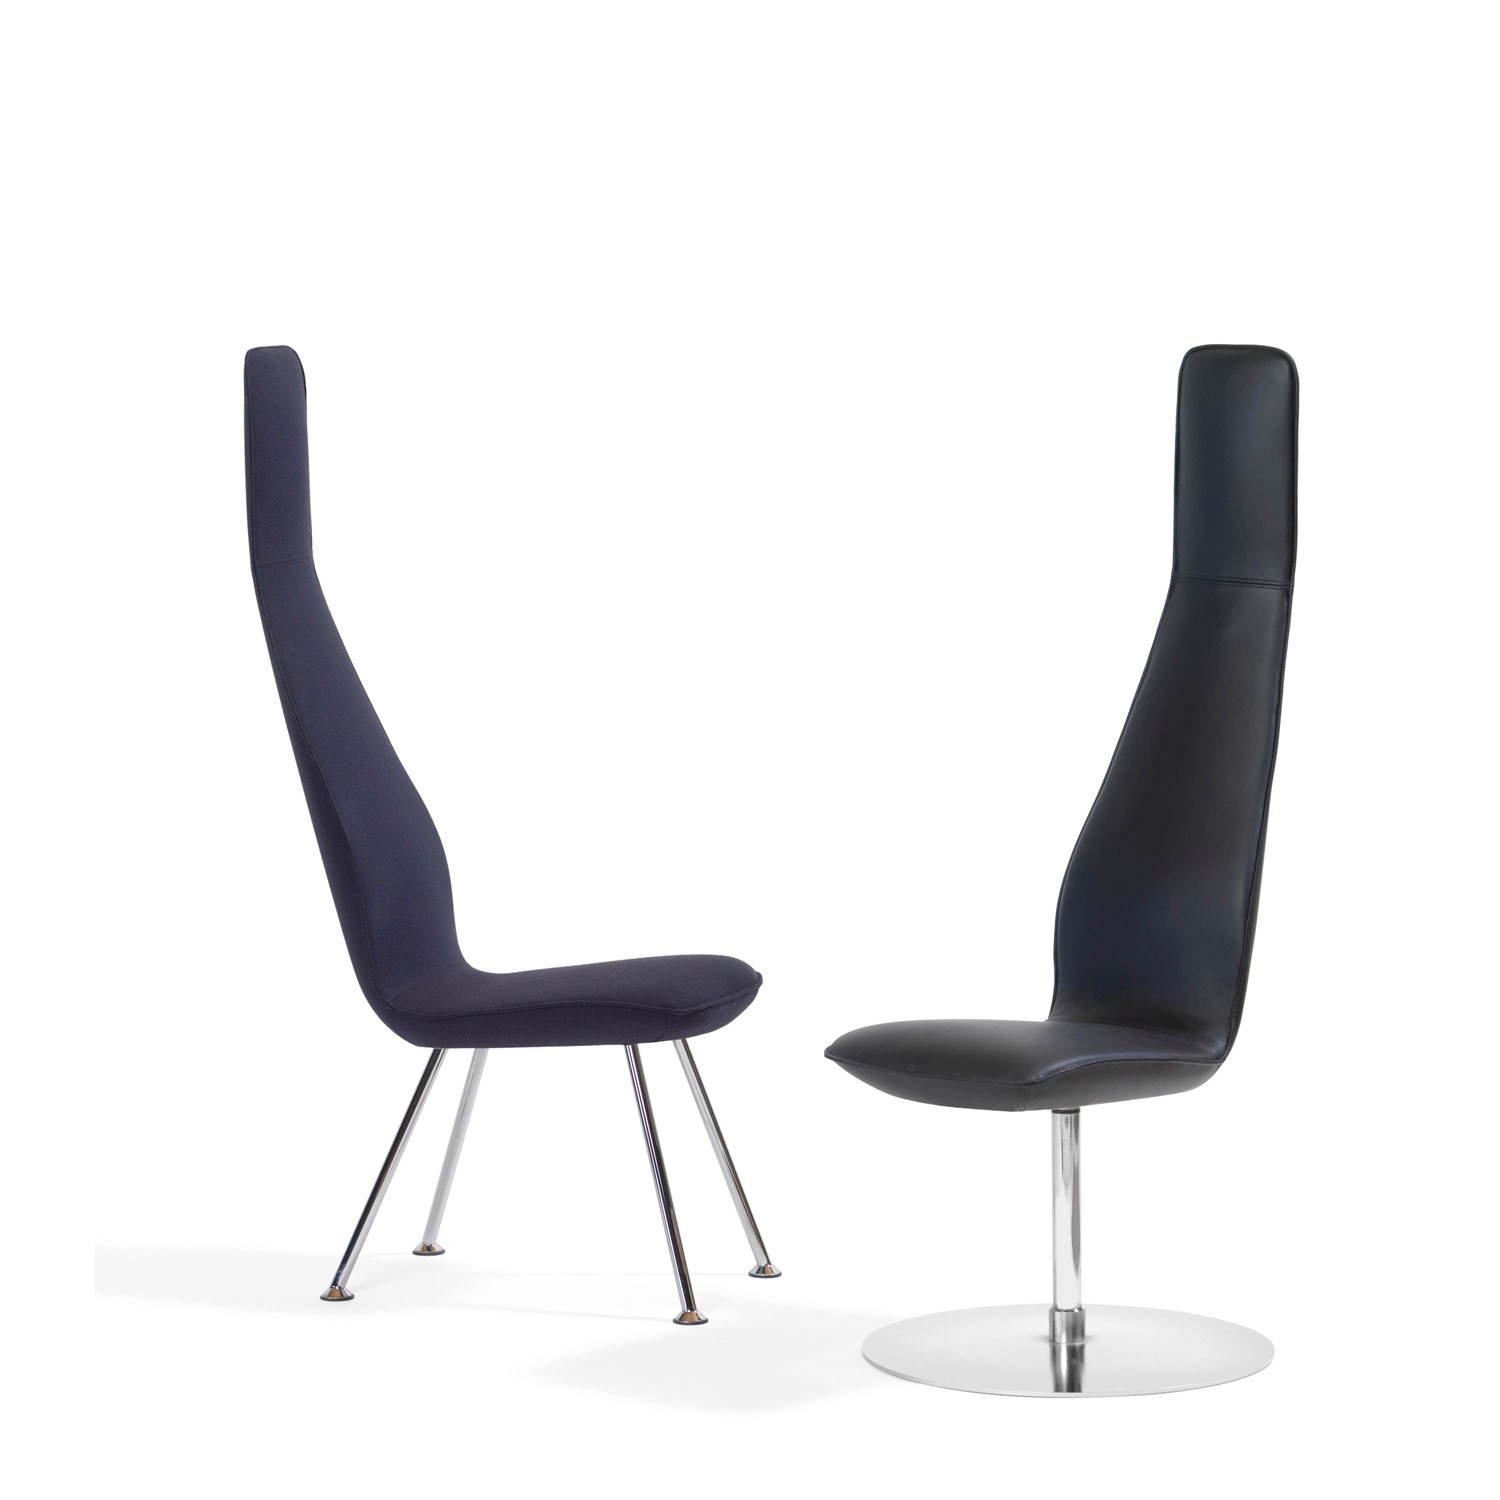 Poppe Swivel Chair from Bla Station